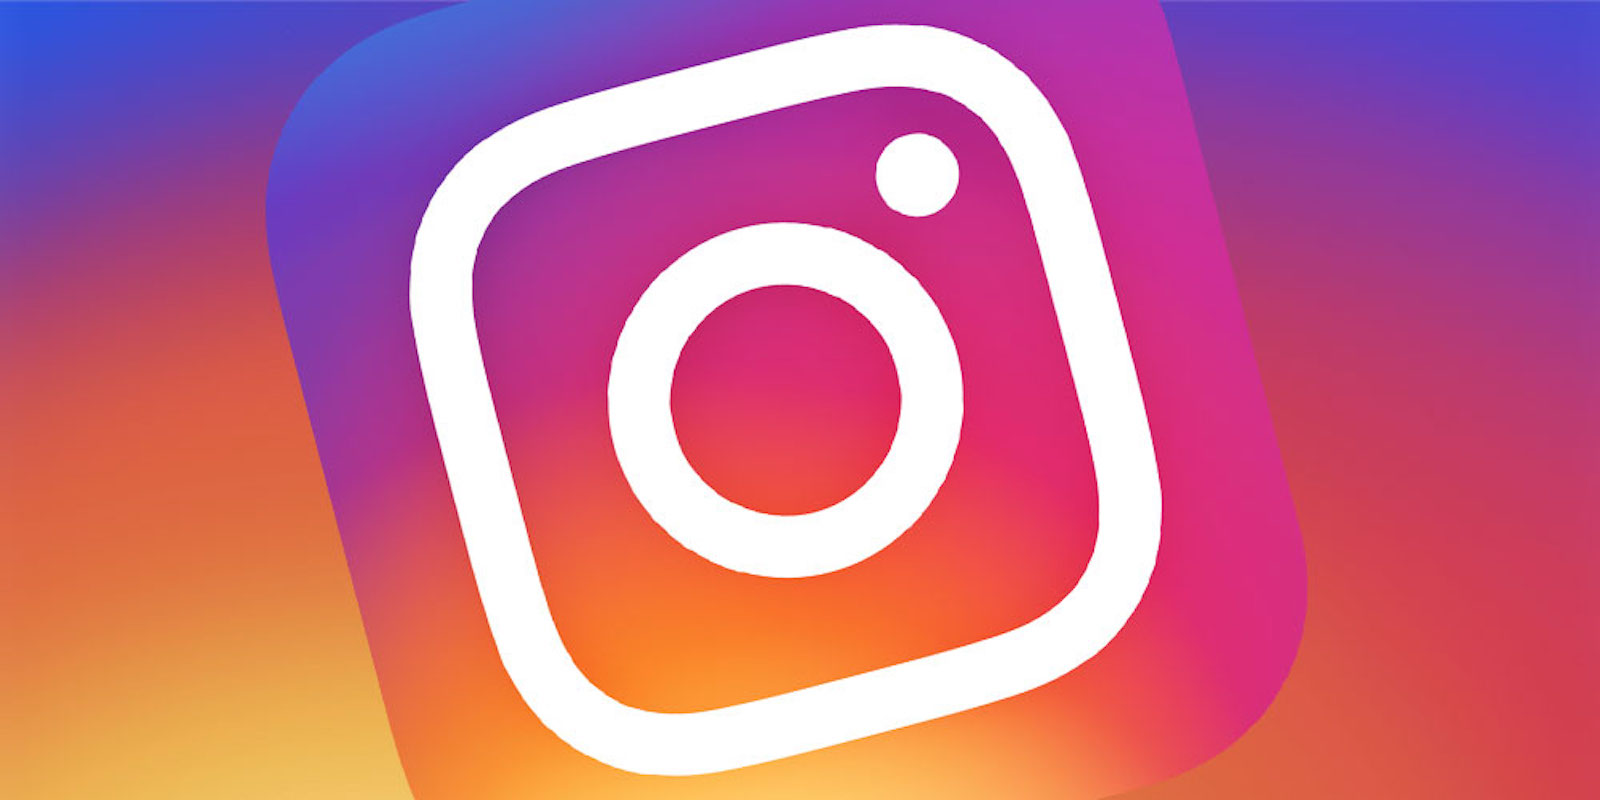 Rhino brings powerful media downloading tools to the Instagram app